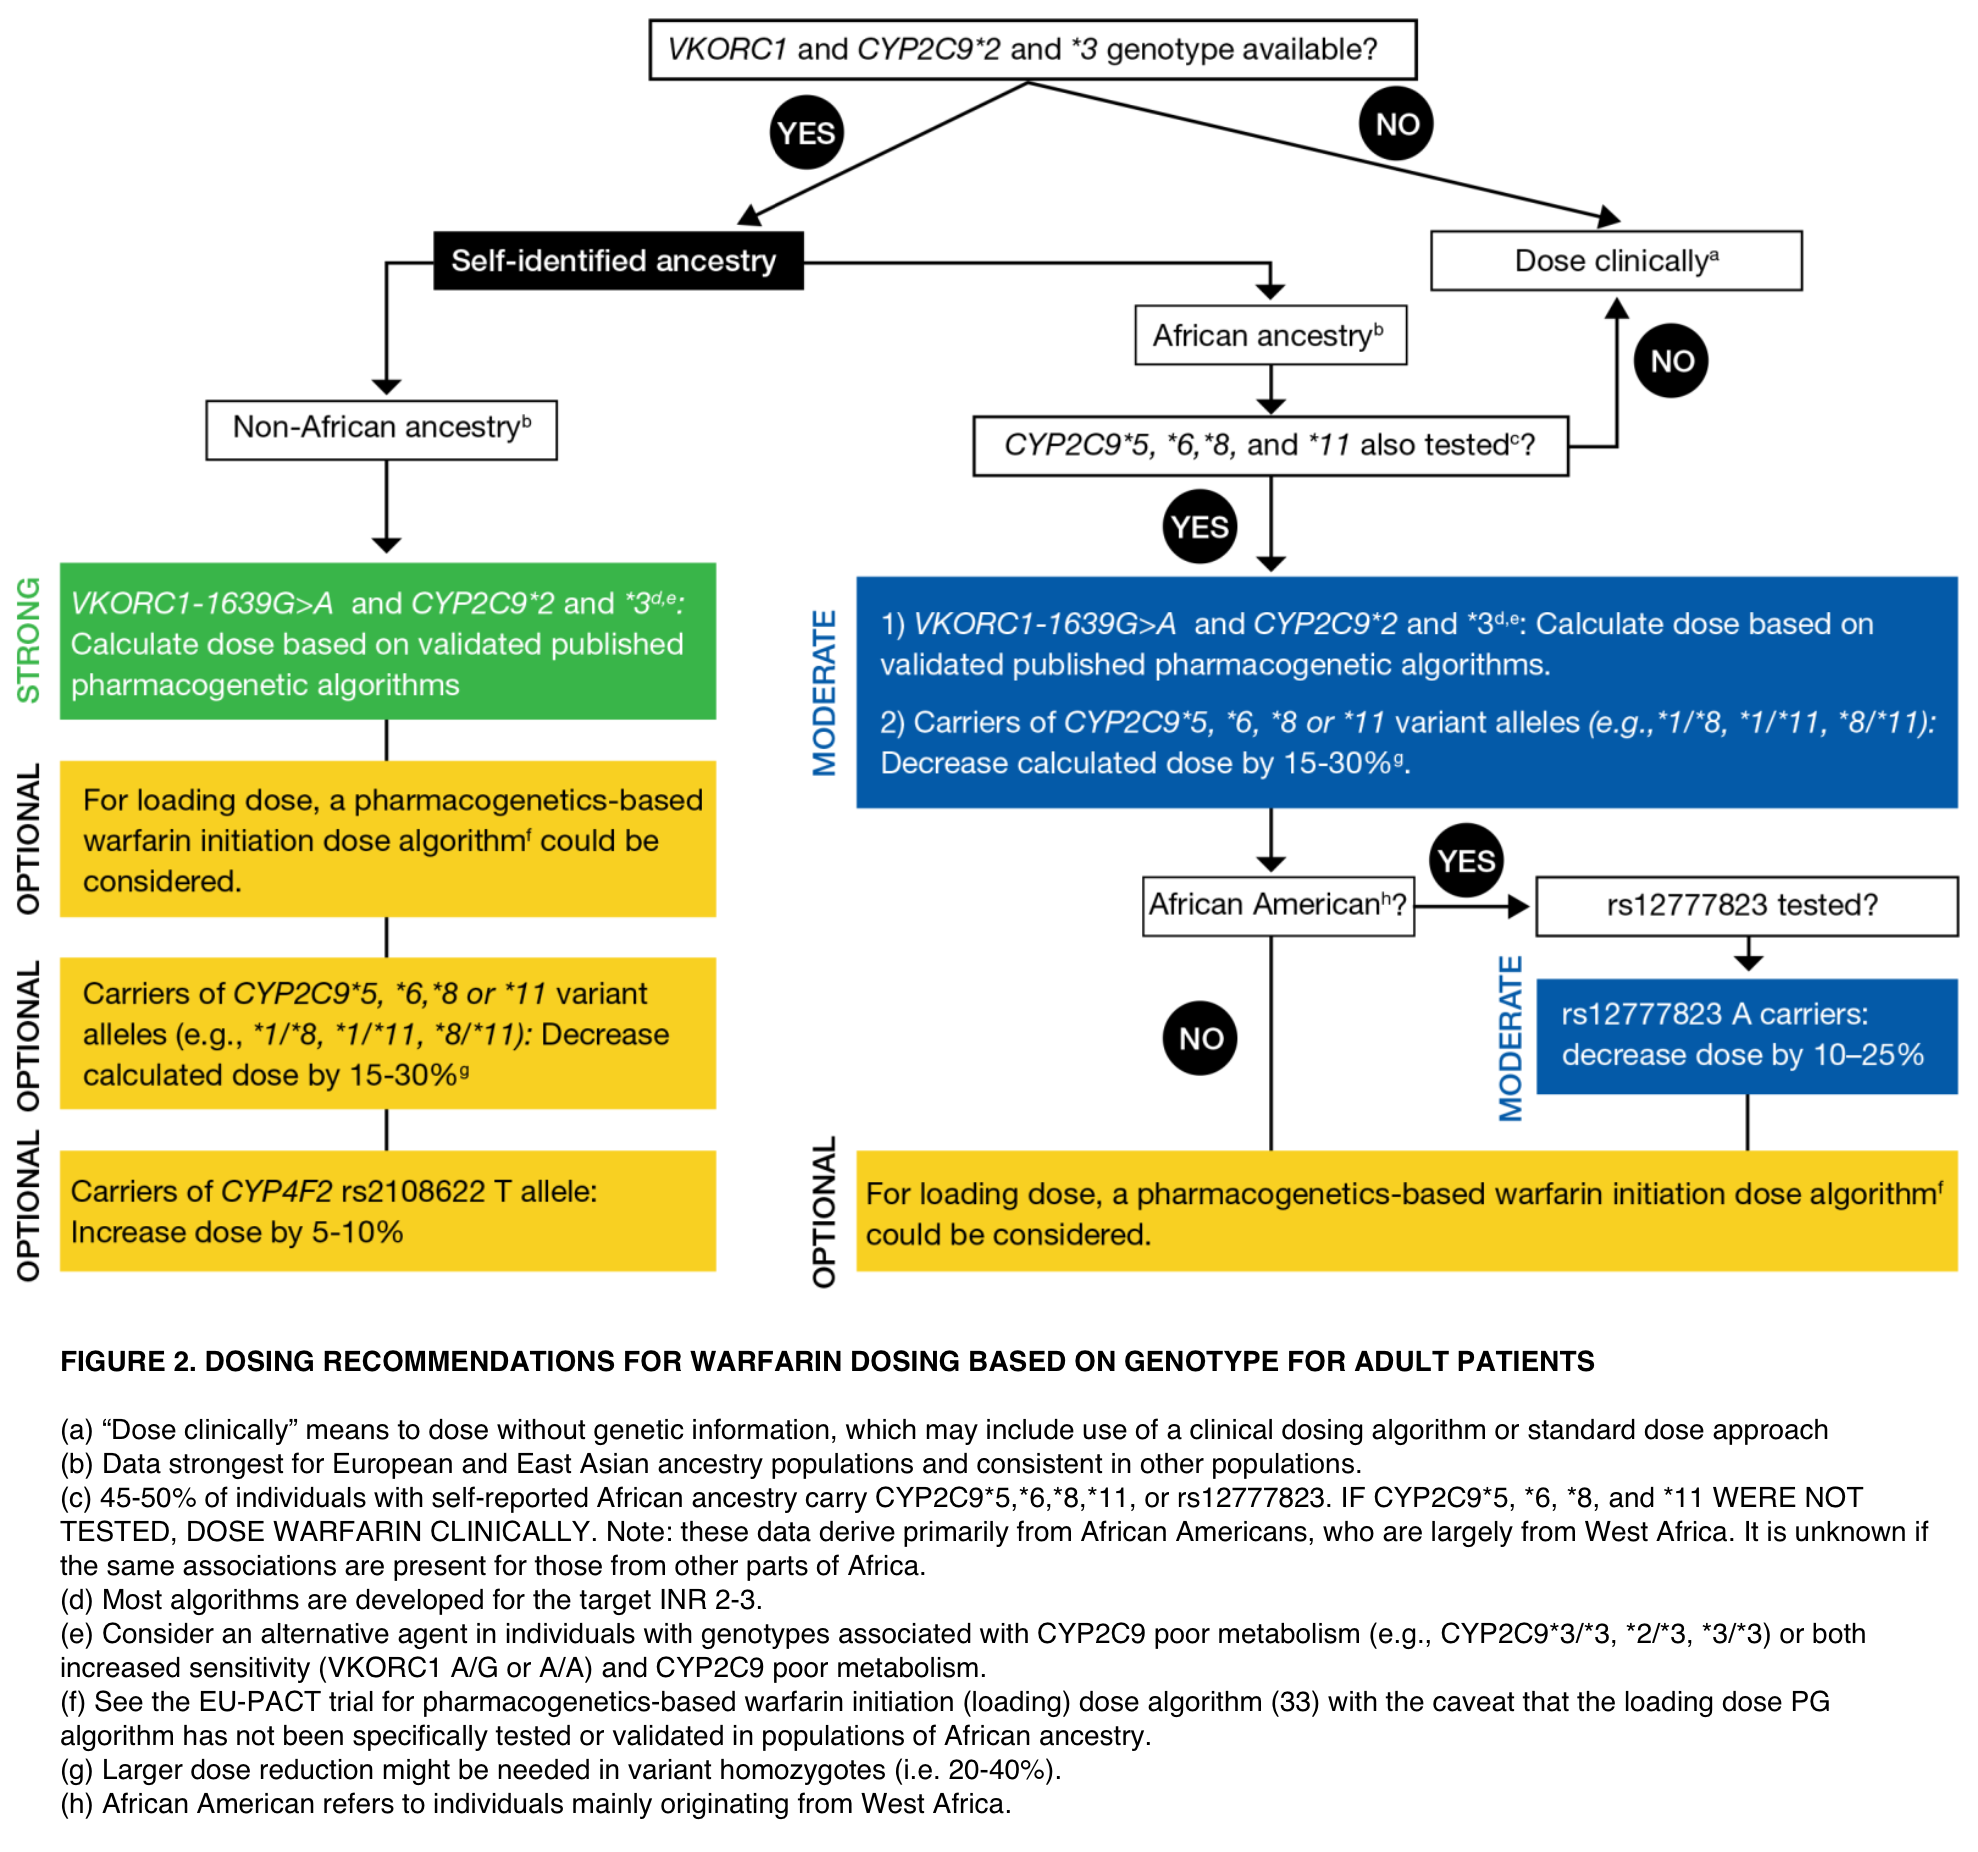 Figure 2 from the CPIC guideline for warfarin